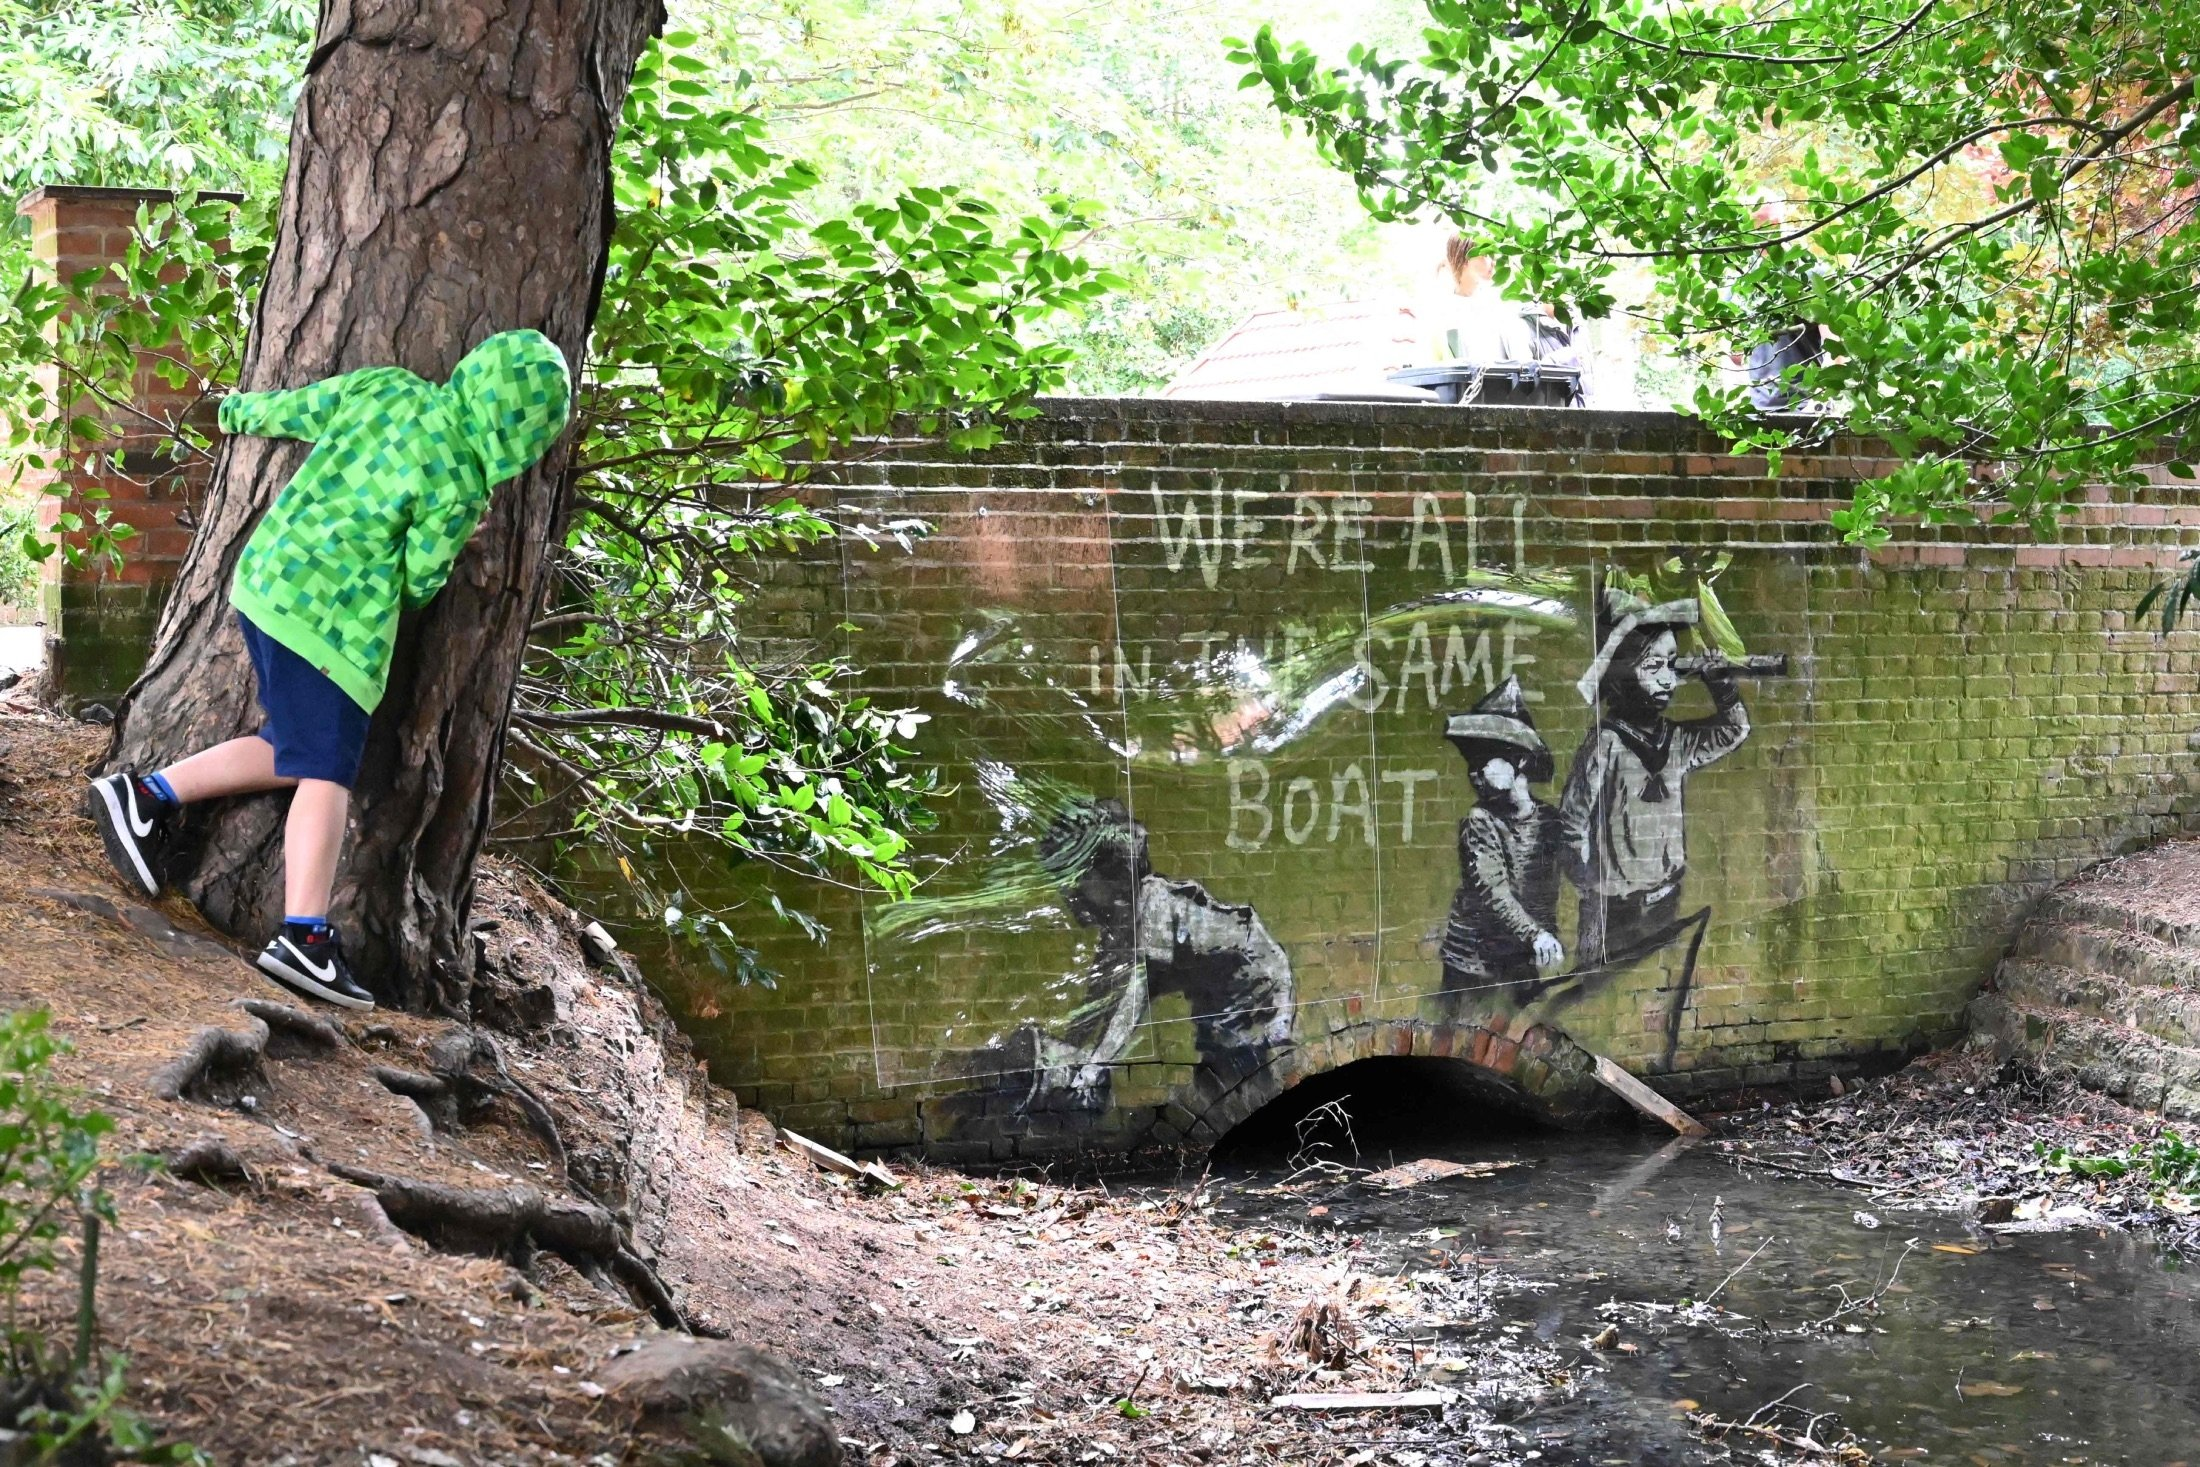 A stensil of children playing at being sailors is the subject of a graffiti artwork bearing the hallmarks of street artist Banksy can be seen on the wall of a bridge in Everitt Park in Lowestoft, U.K., Aug. 8, 2021. (AFP Photo)